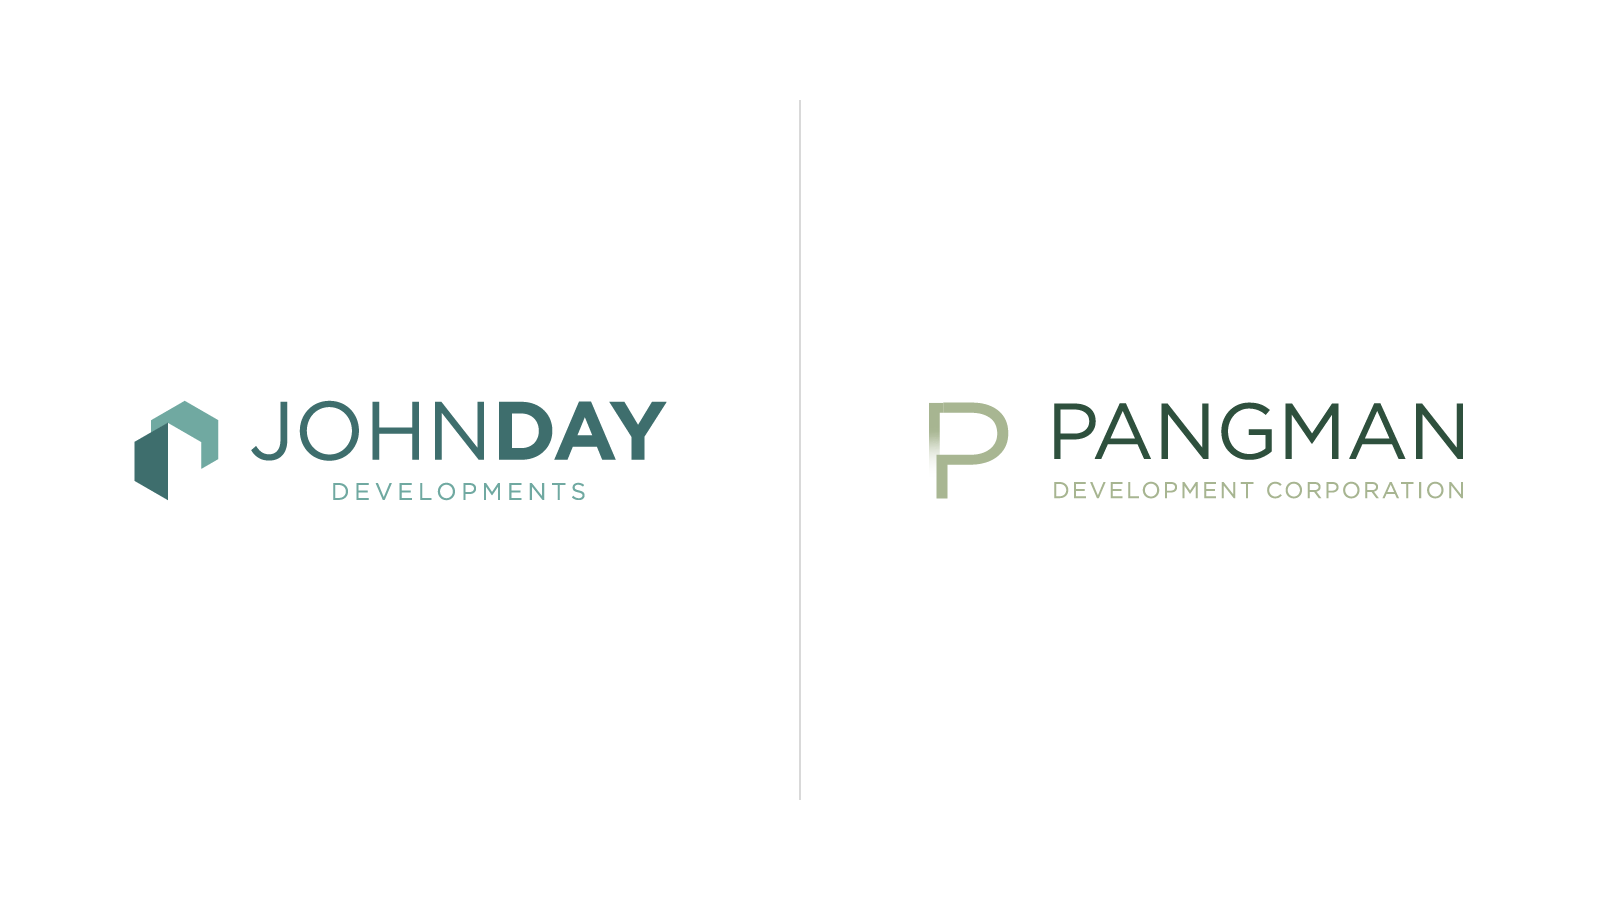 Redesigned John Day Developments and Pangman Development Corporation logos side-by-side